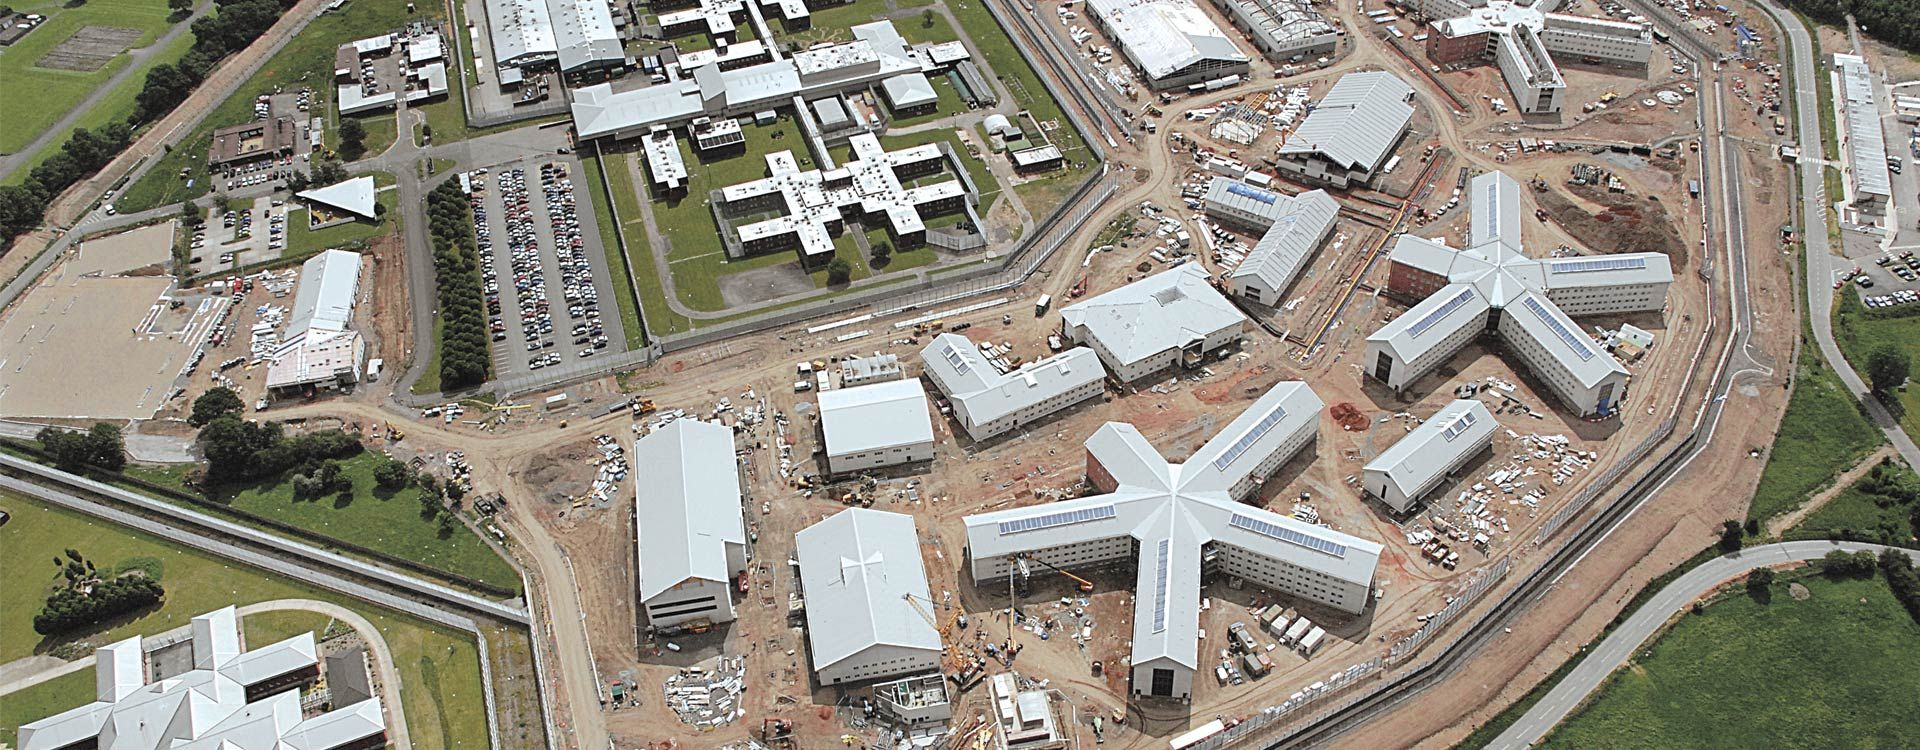 bnr-HM-Prison-Oakwood_Government-Buildings